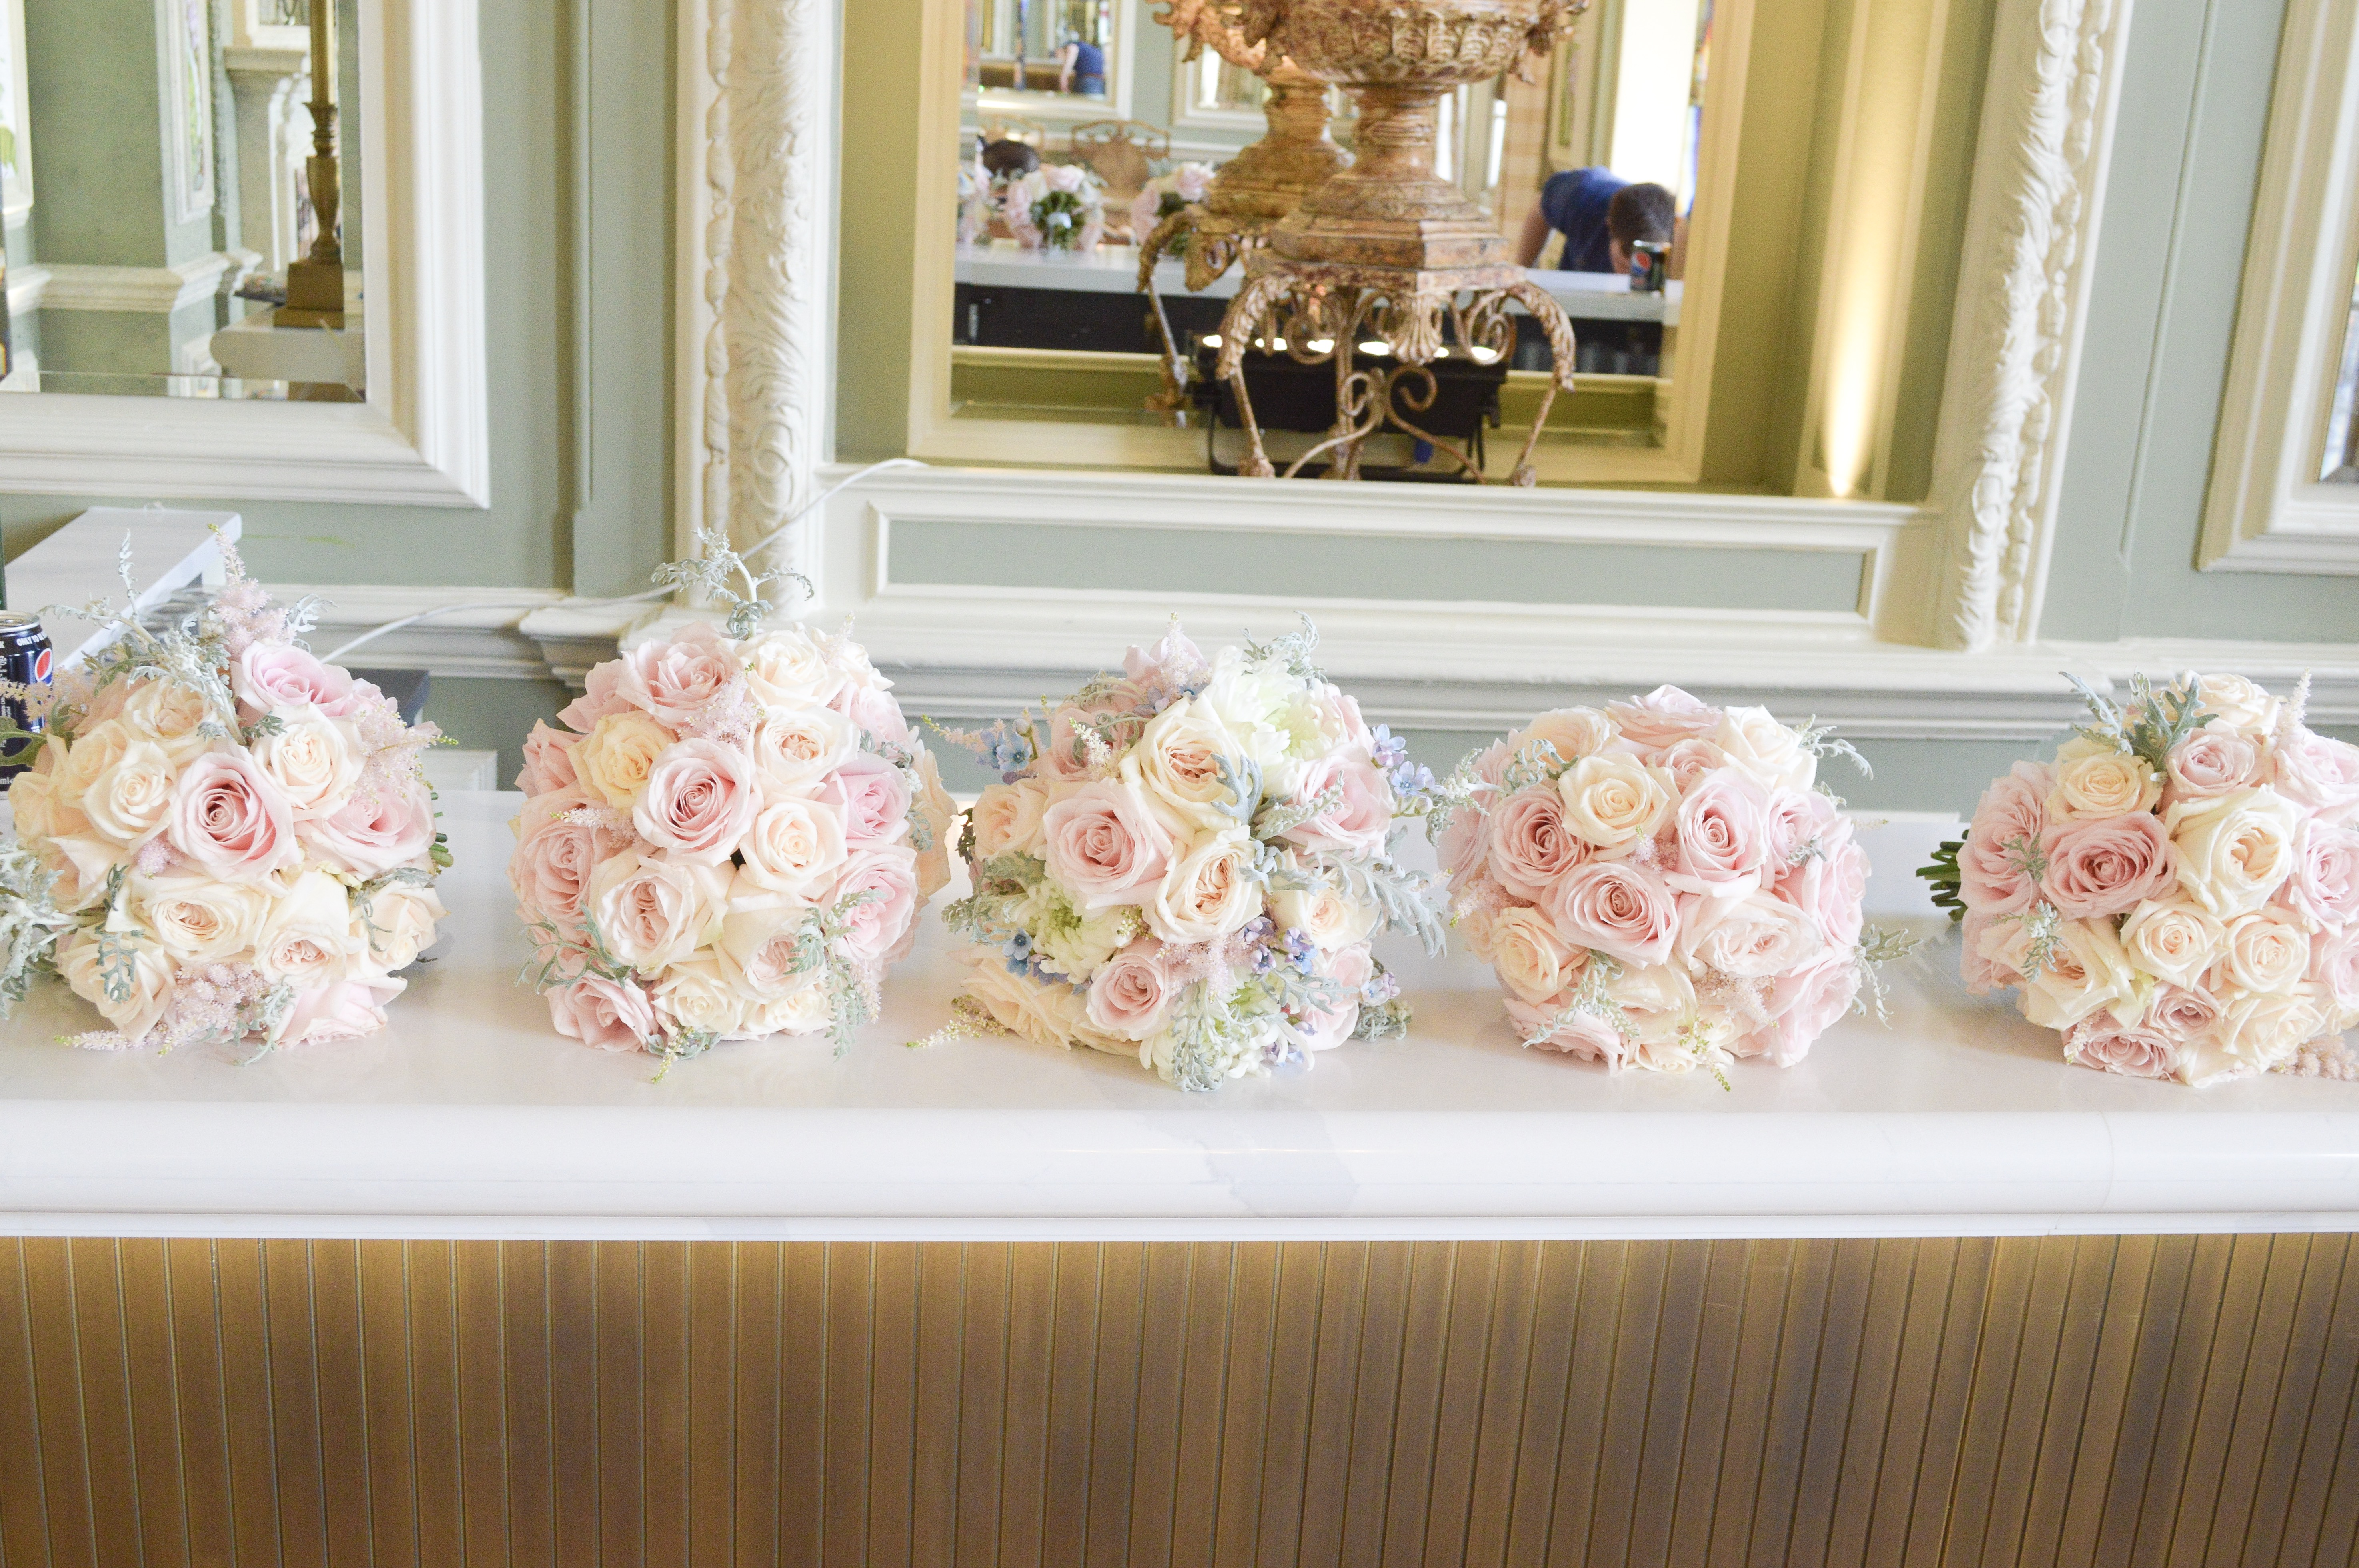 Dusty blue and pink wedding flowers bridal bouquet bridesmaids bouquet Cherie Kelly cakes London Hedsor House